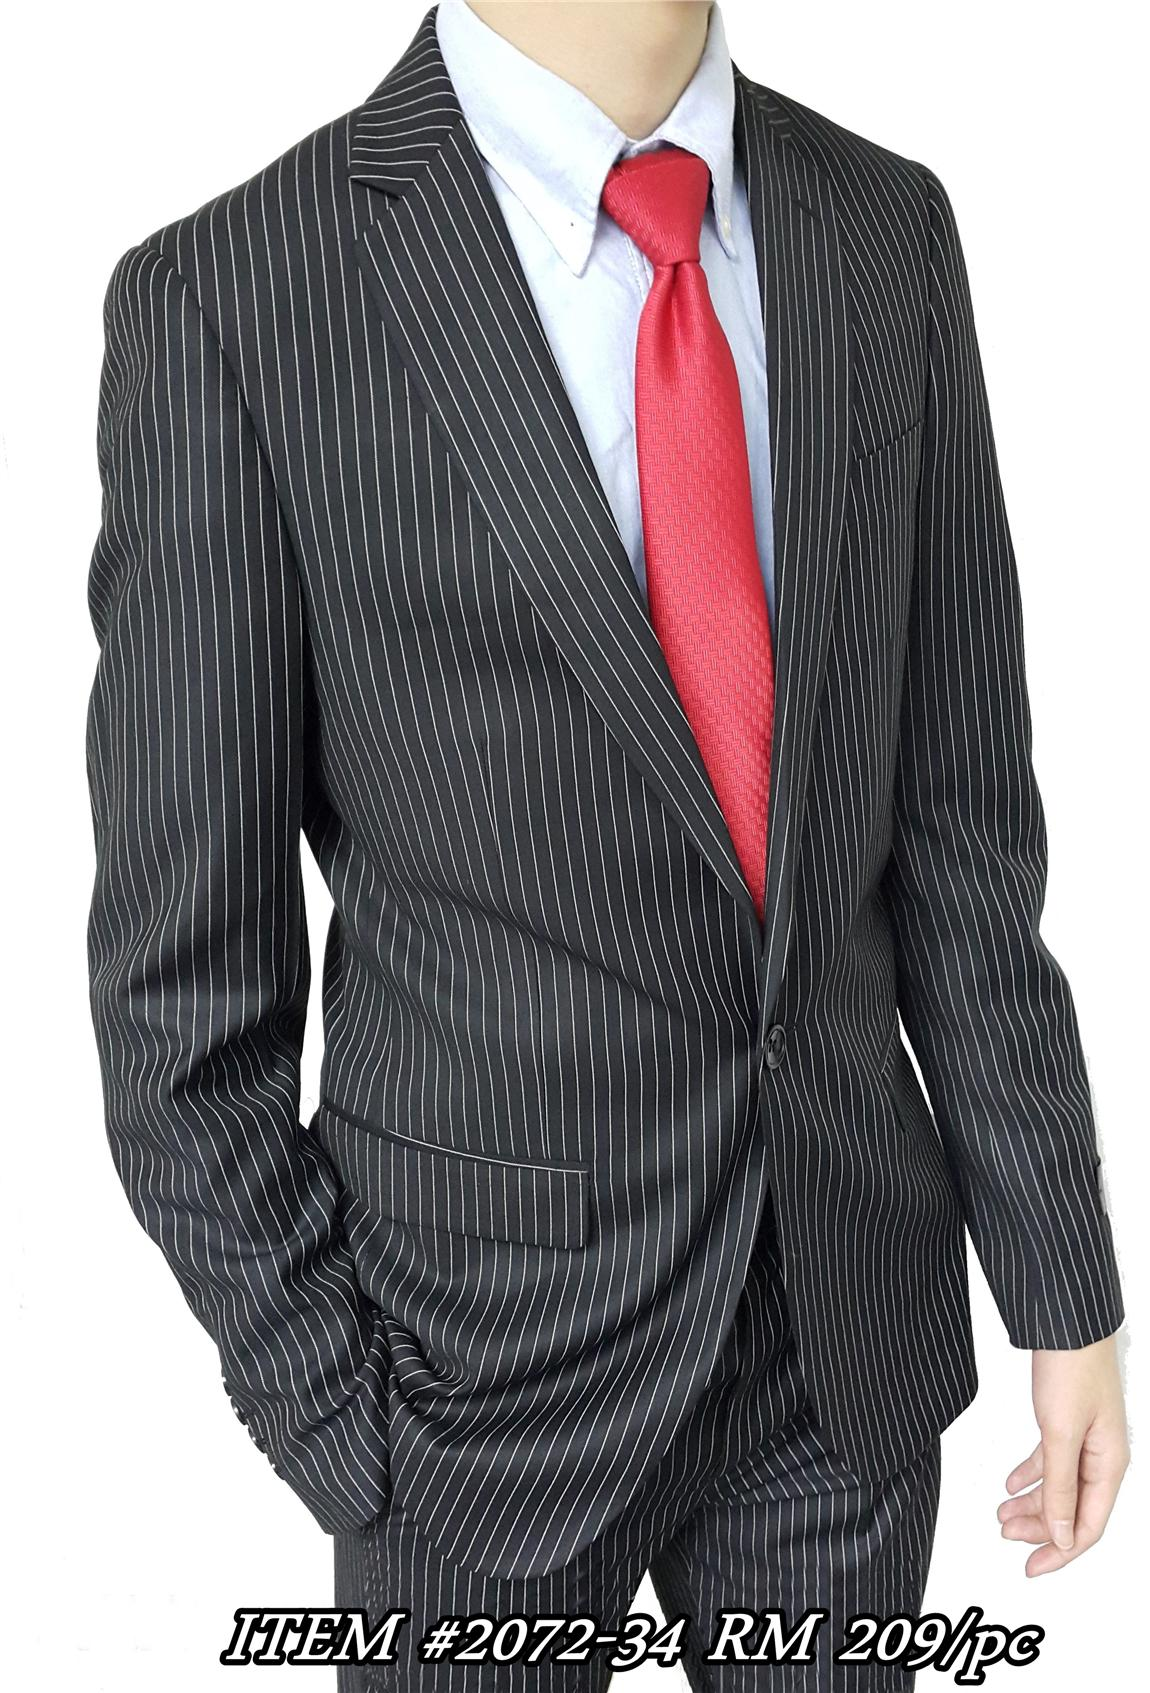 Take any outfit to handsome completion with this men's blazer. Its navy blue fabric is accented by a subtle set of vertical white stripes. Notched lapels and a center vent speak to classic style. Traditional fit. Two-buttoned front closure.